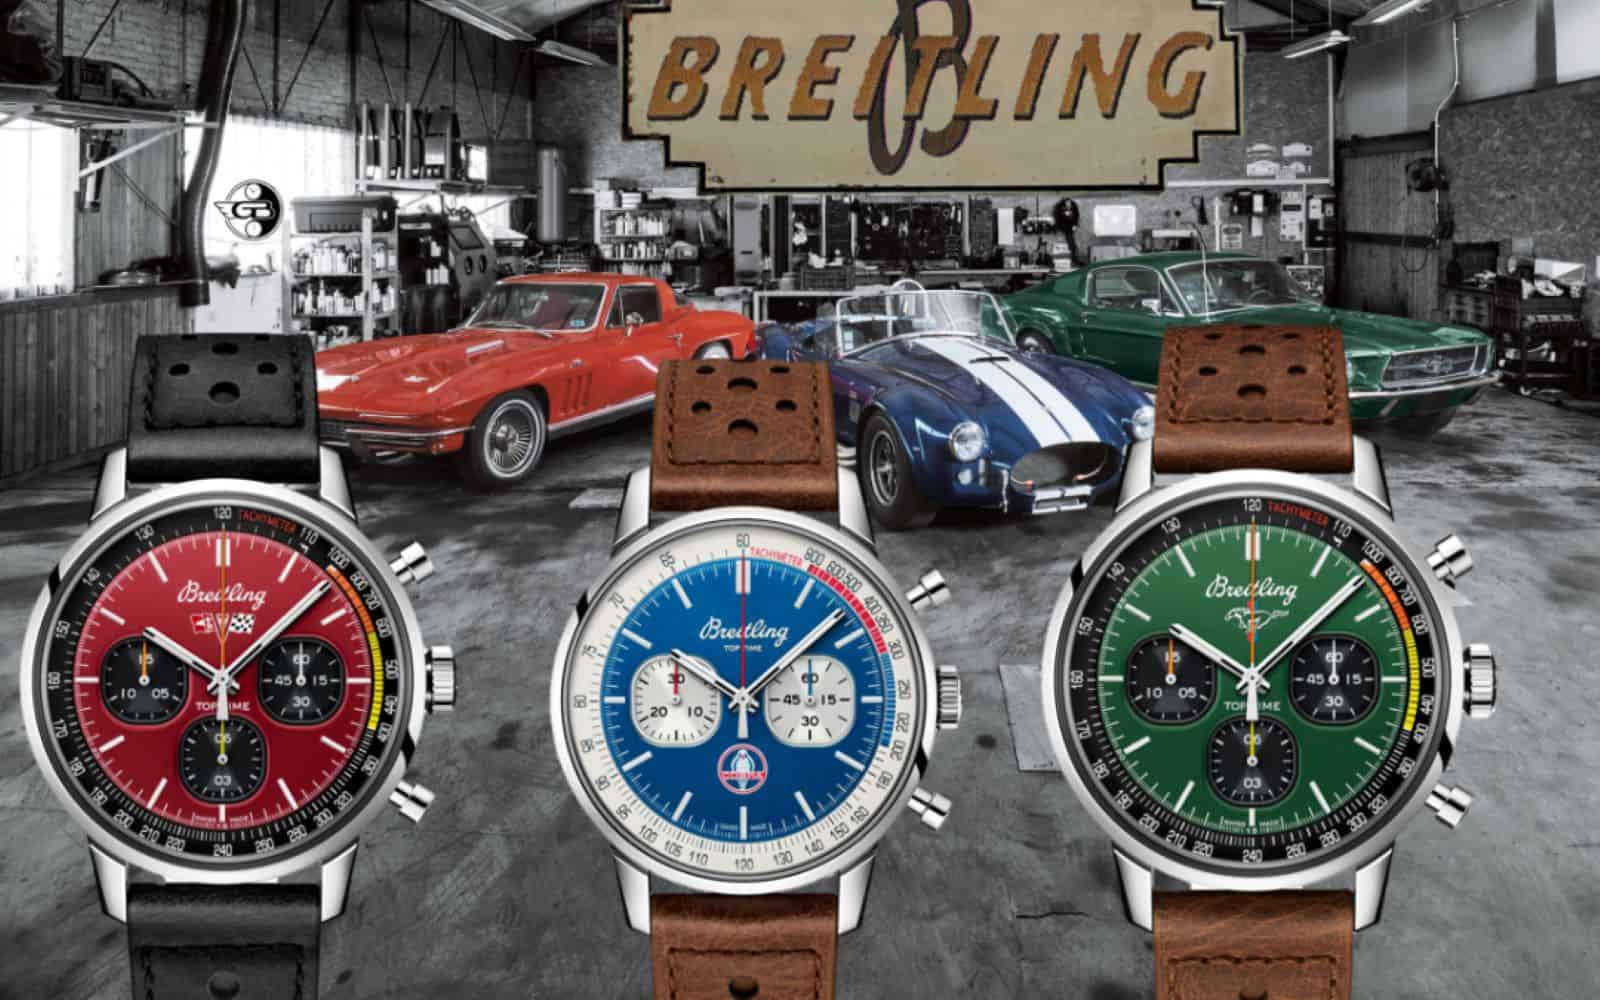 Breitling Top Time Classic Cars Collection 2021 (C) Uhrenkosmos